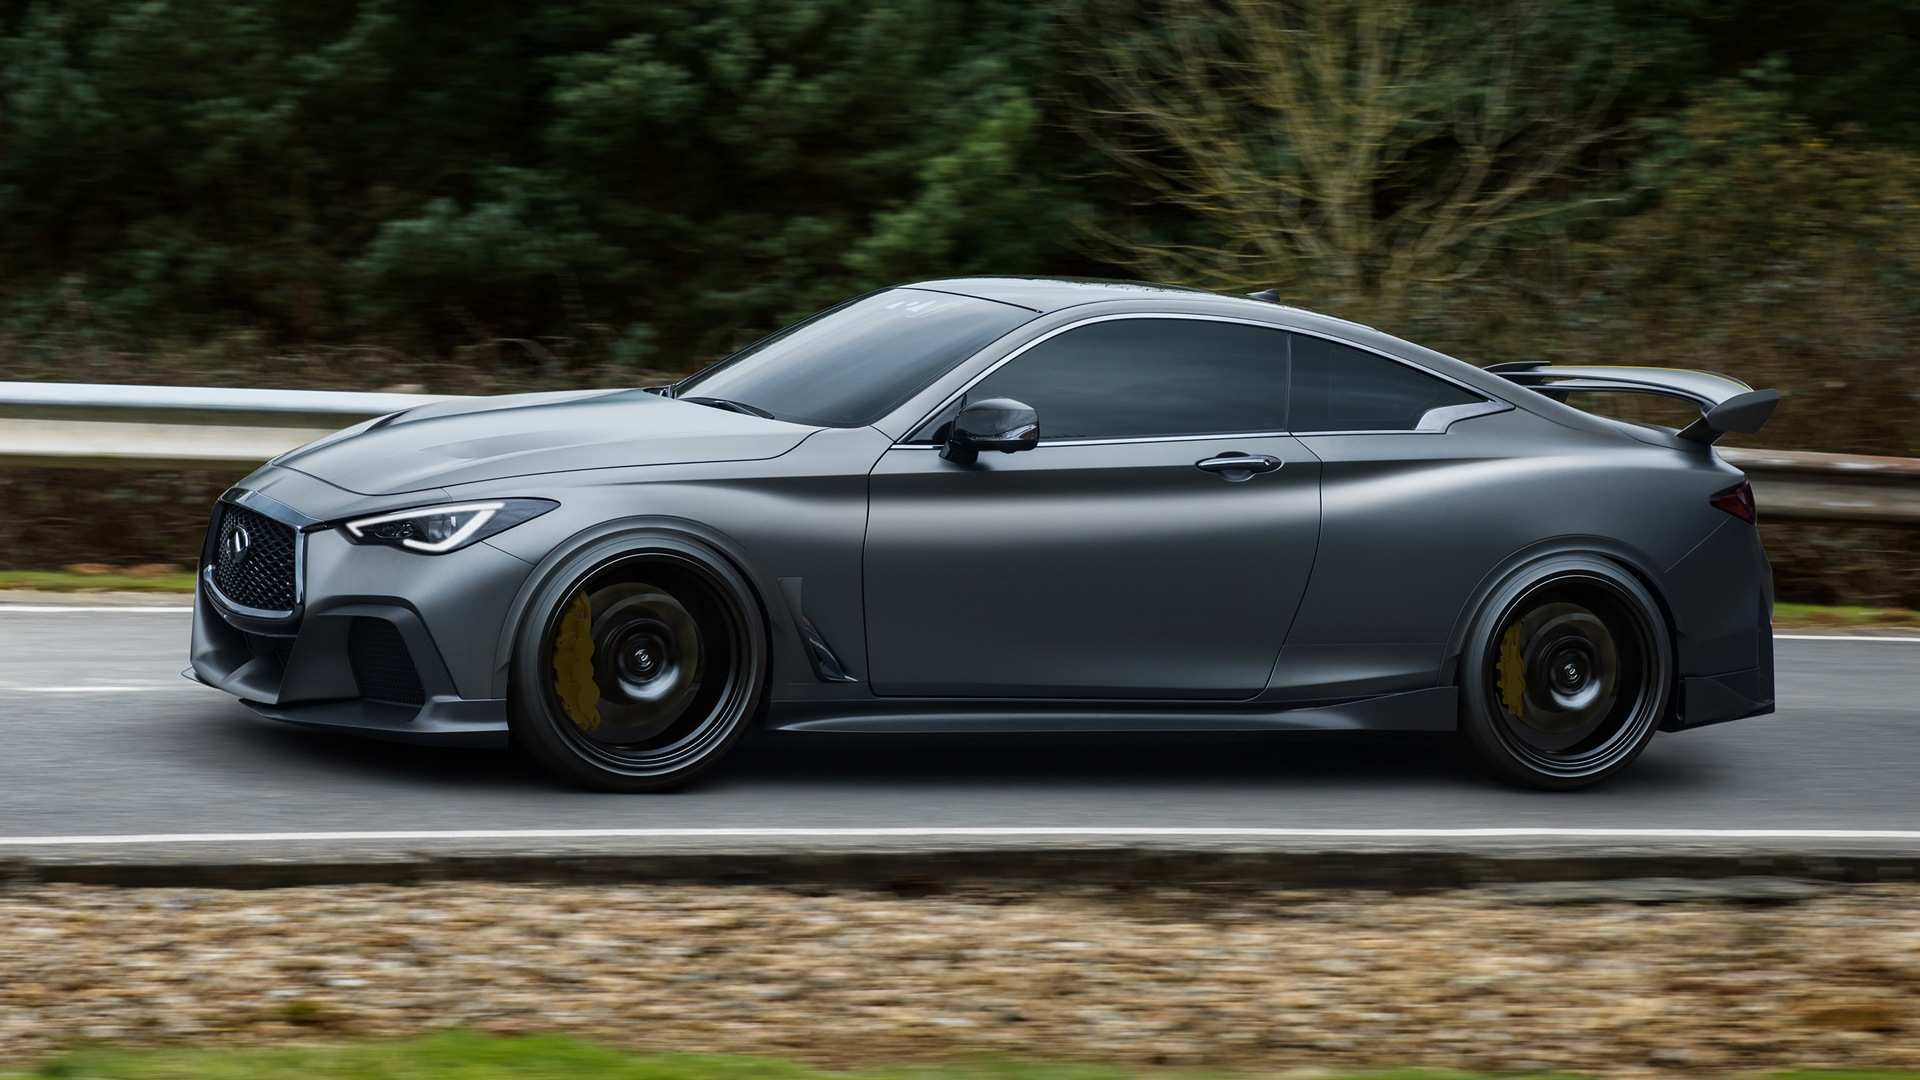 87 All New 2019 Infiniti Q60 Black S Price Design And Review